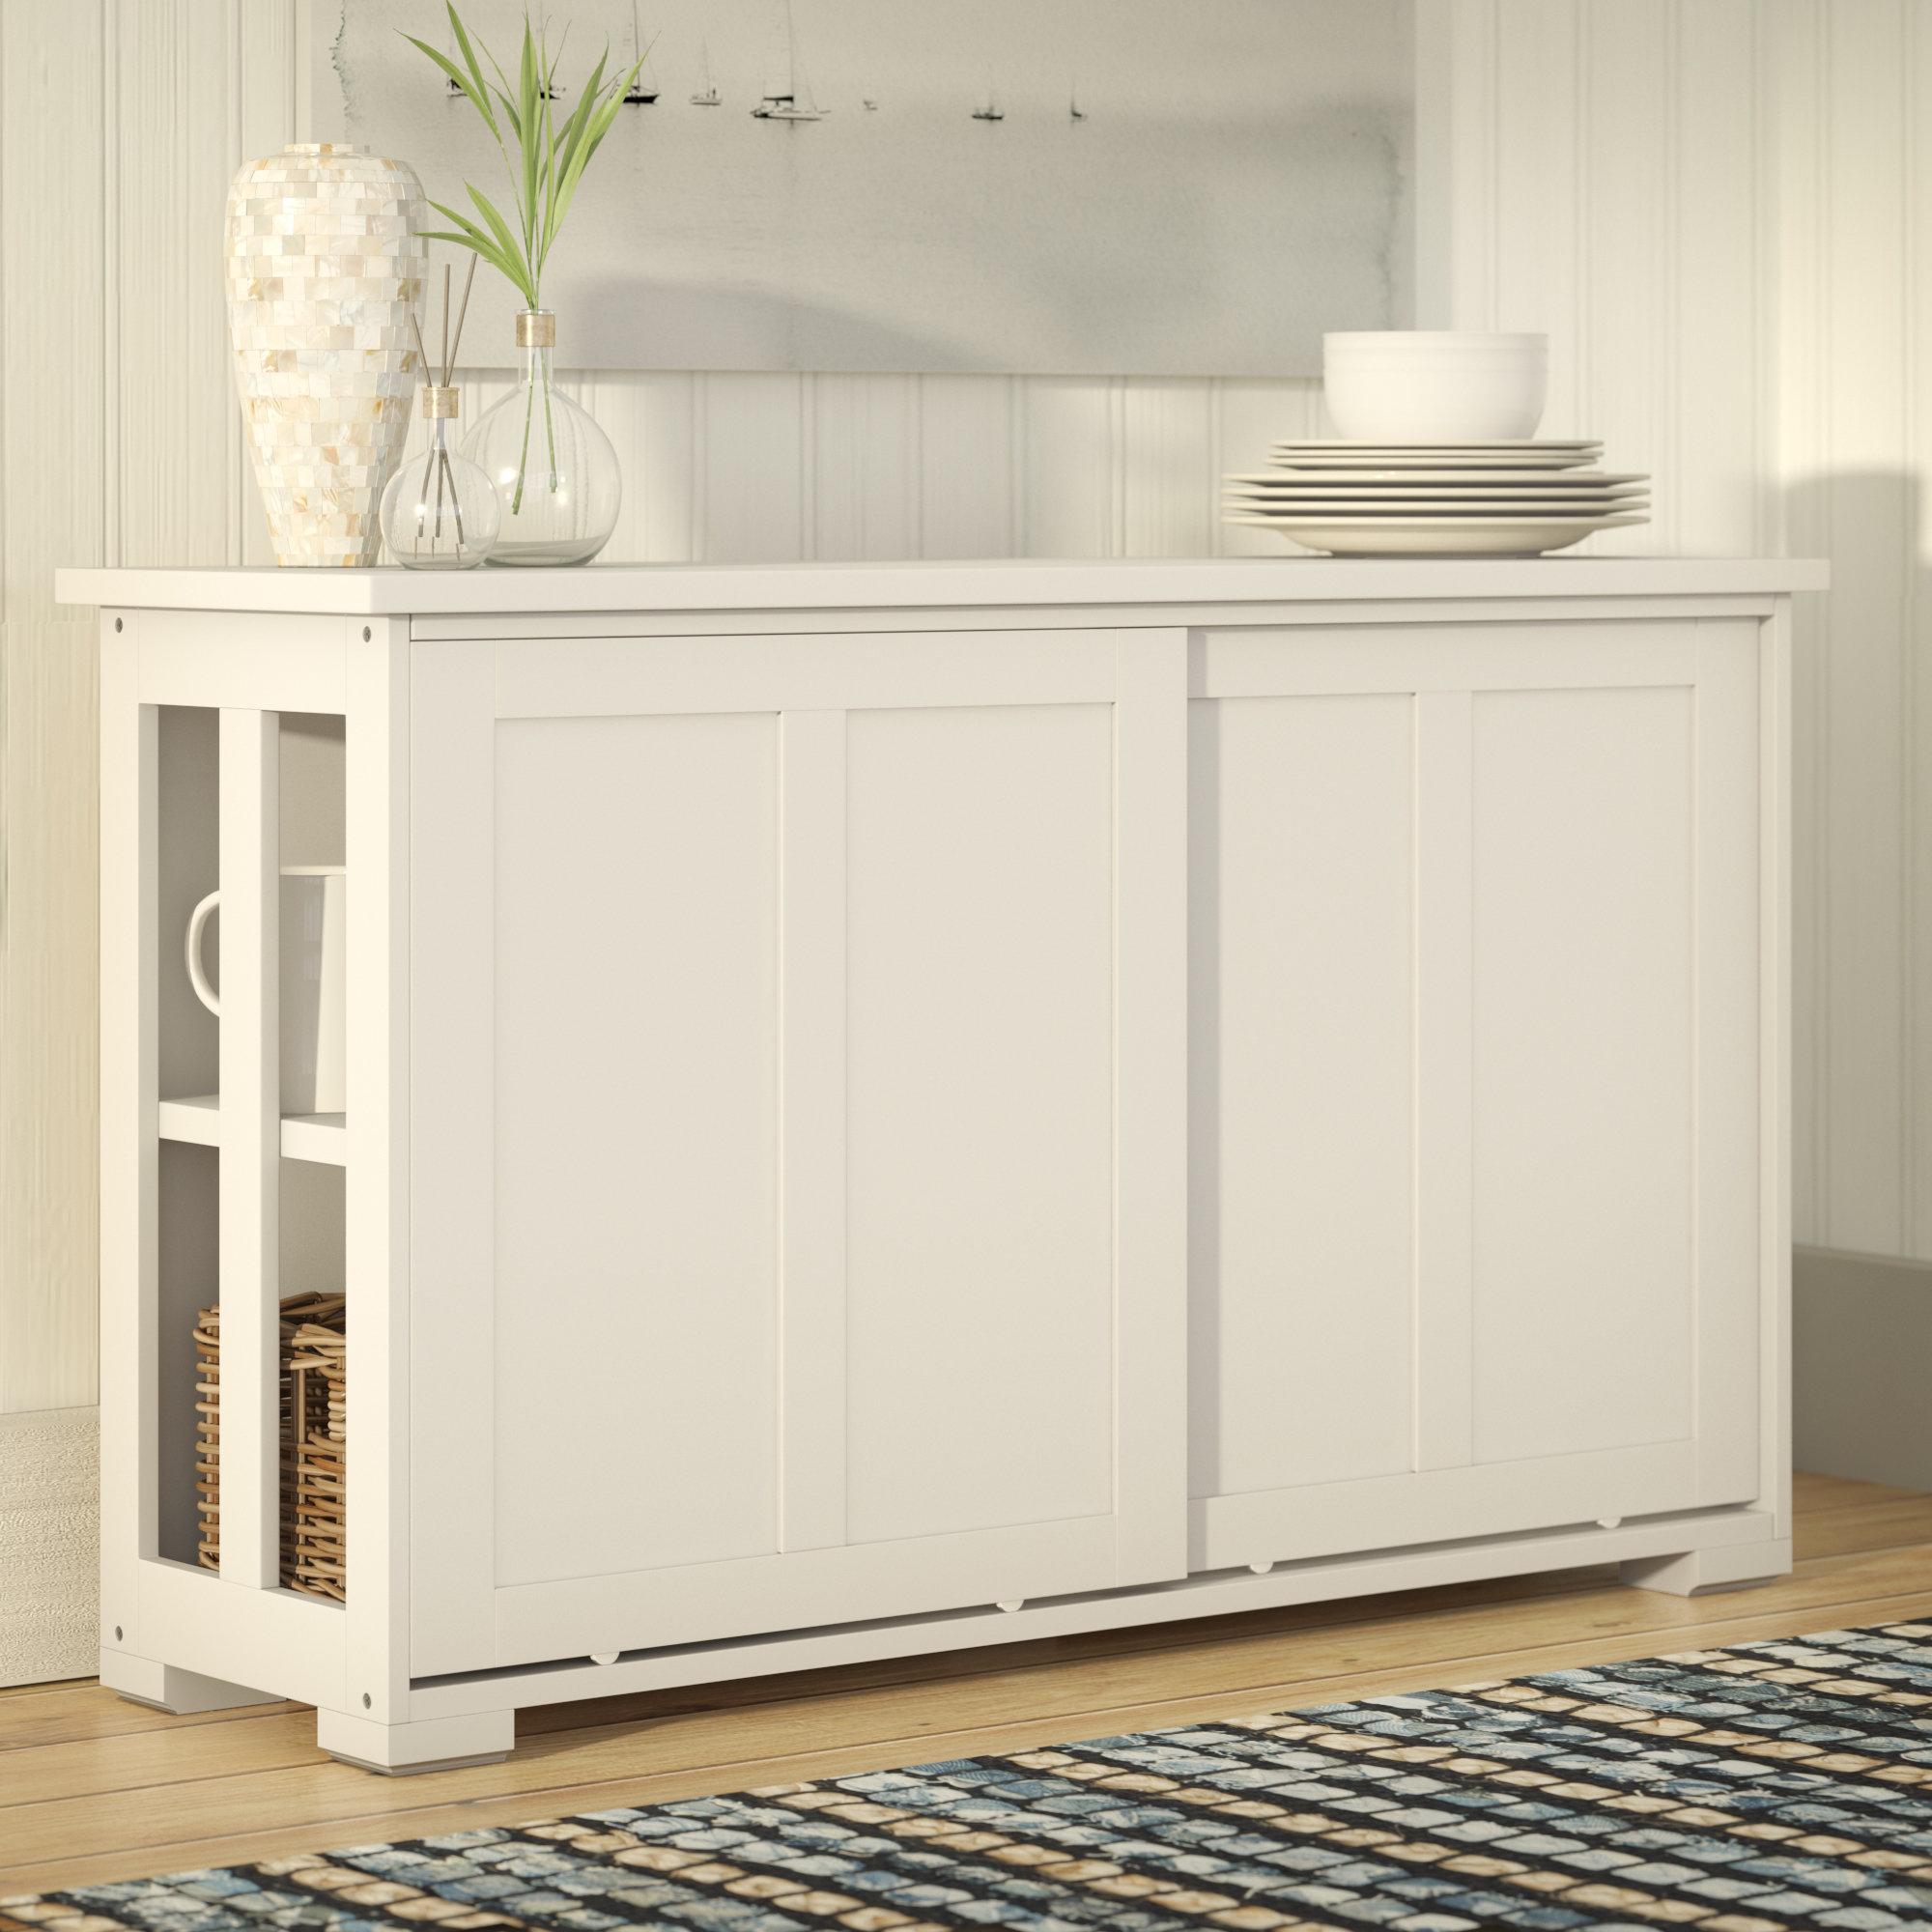 Beachcrest Home South Miami Sideboard & Reviews | Wayfair (View 2 of 20)